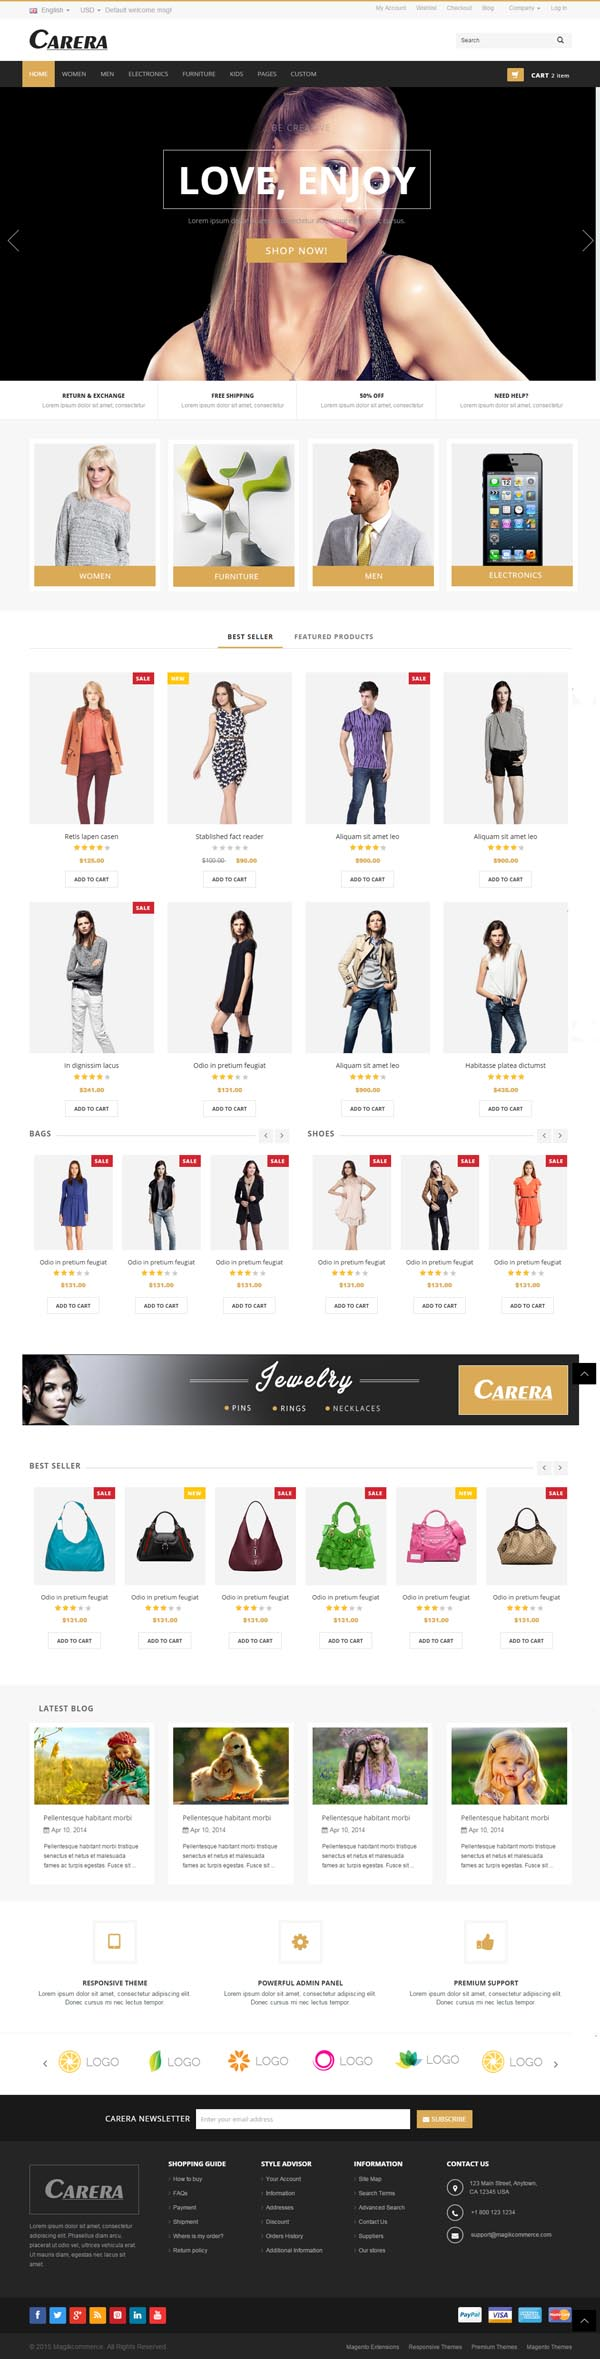 Free website templates for free download about (2,503) 47